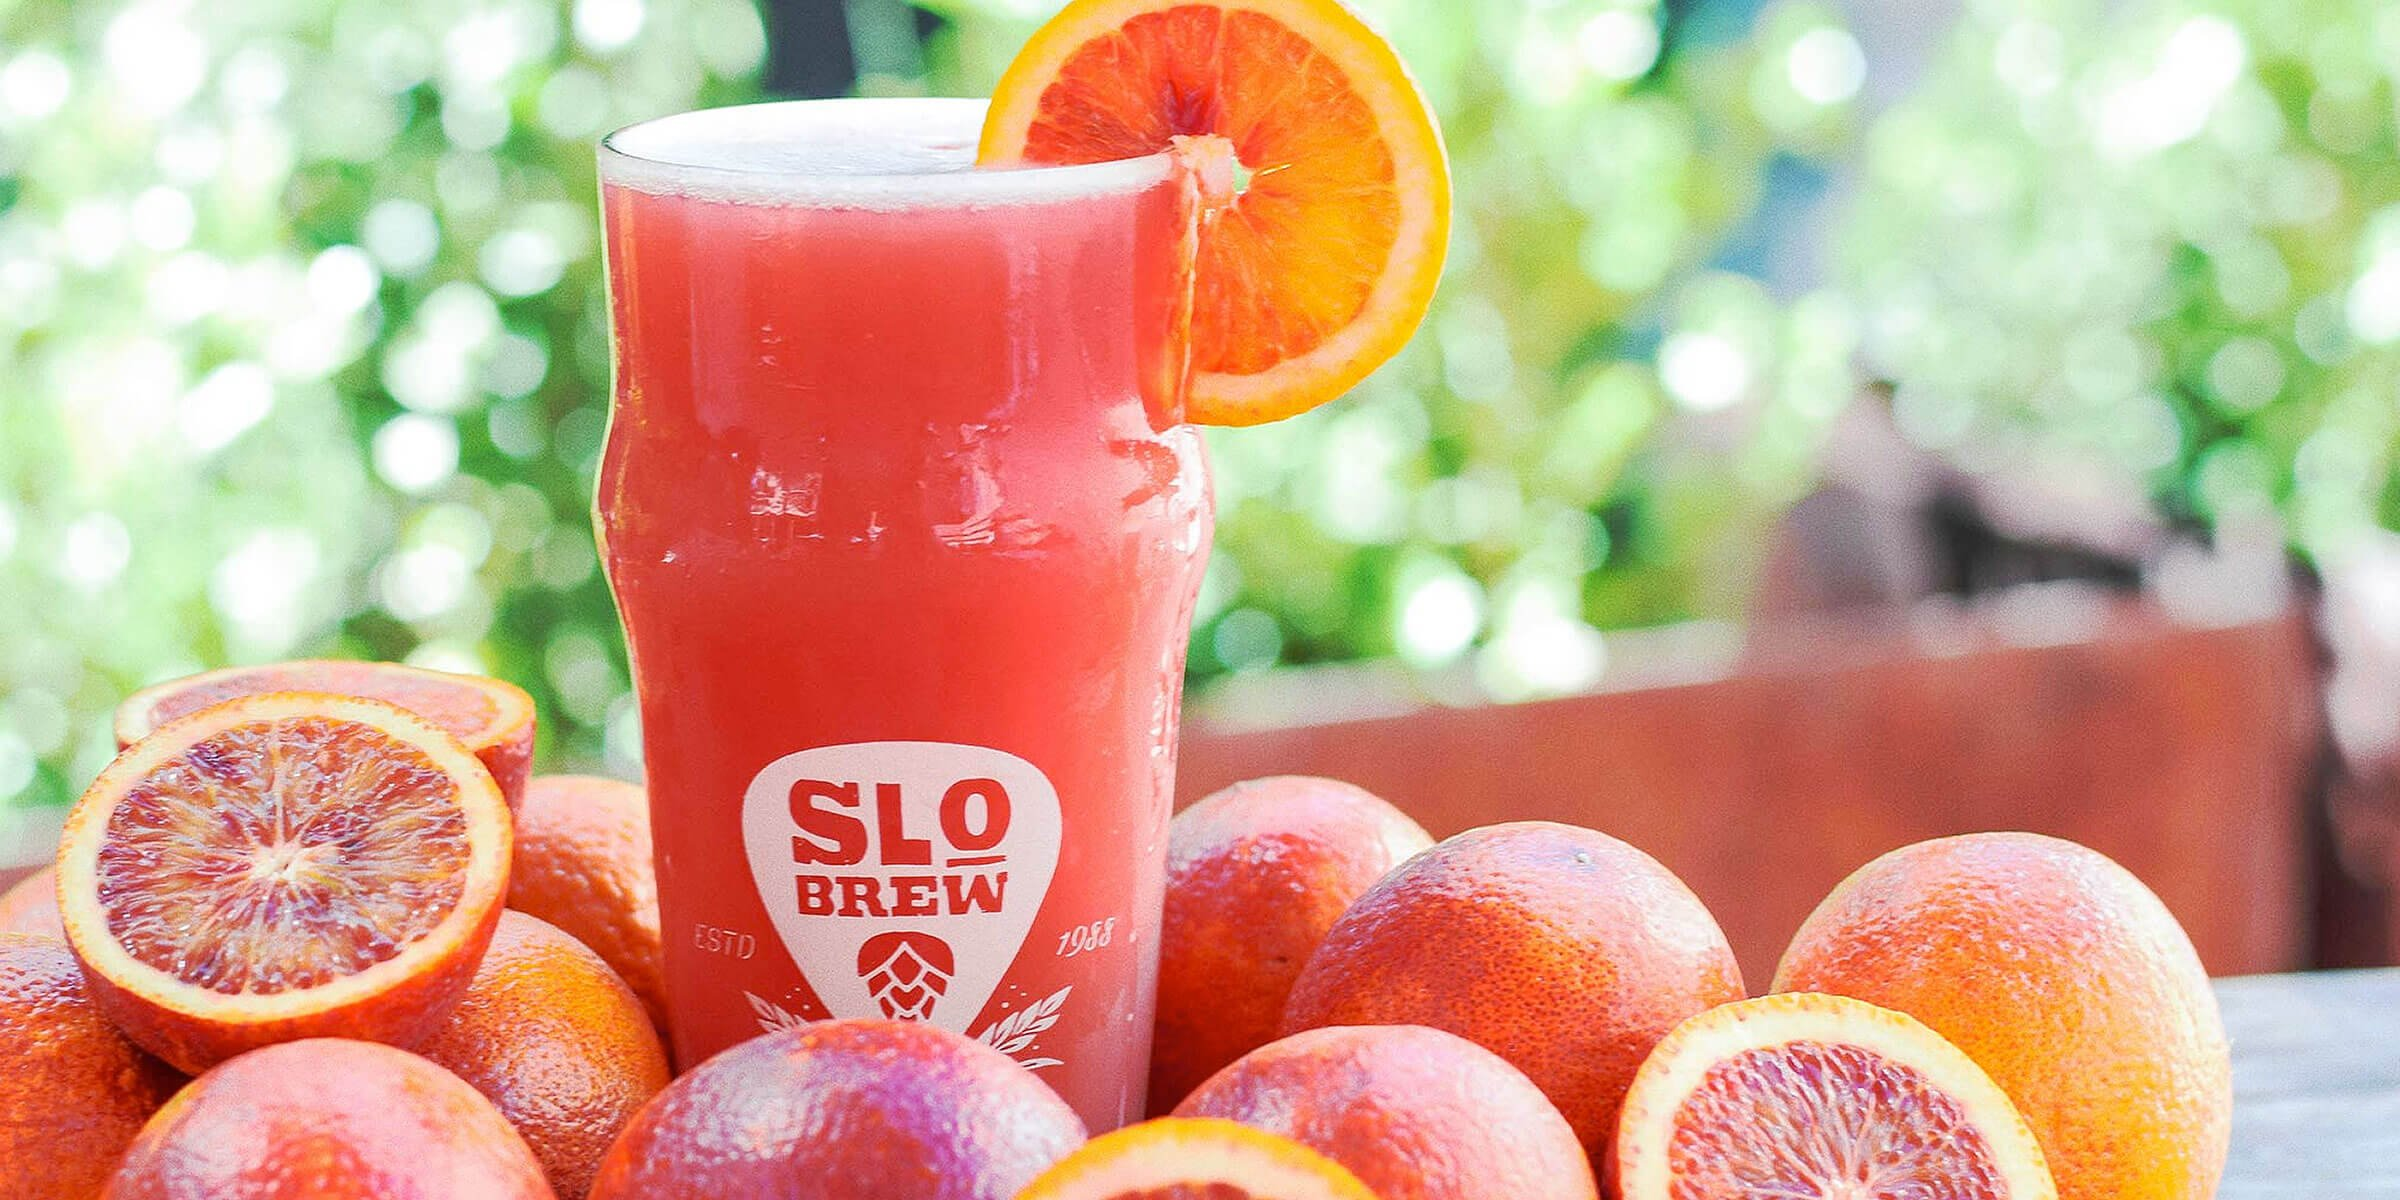 SLO Brewing Co. is shipping its flagship Cali-Squeeze line of Hefeweizens to 47 additional states beyond their California, Arizona and Georgia distribution.